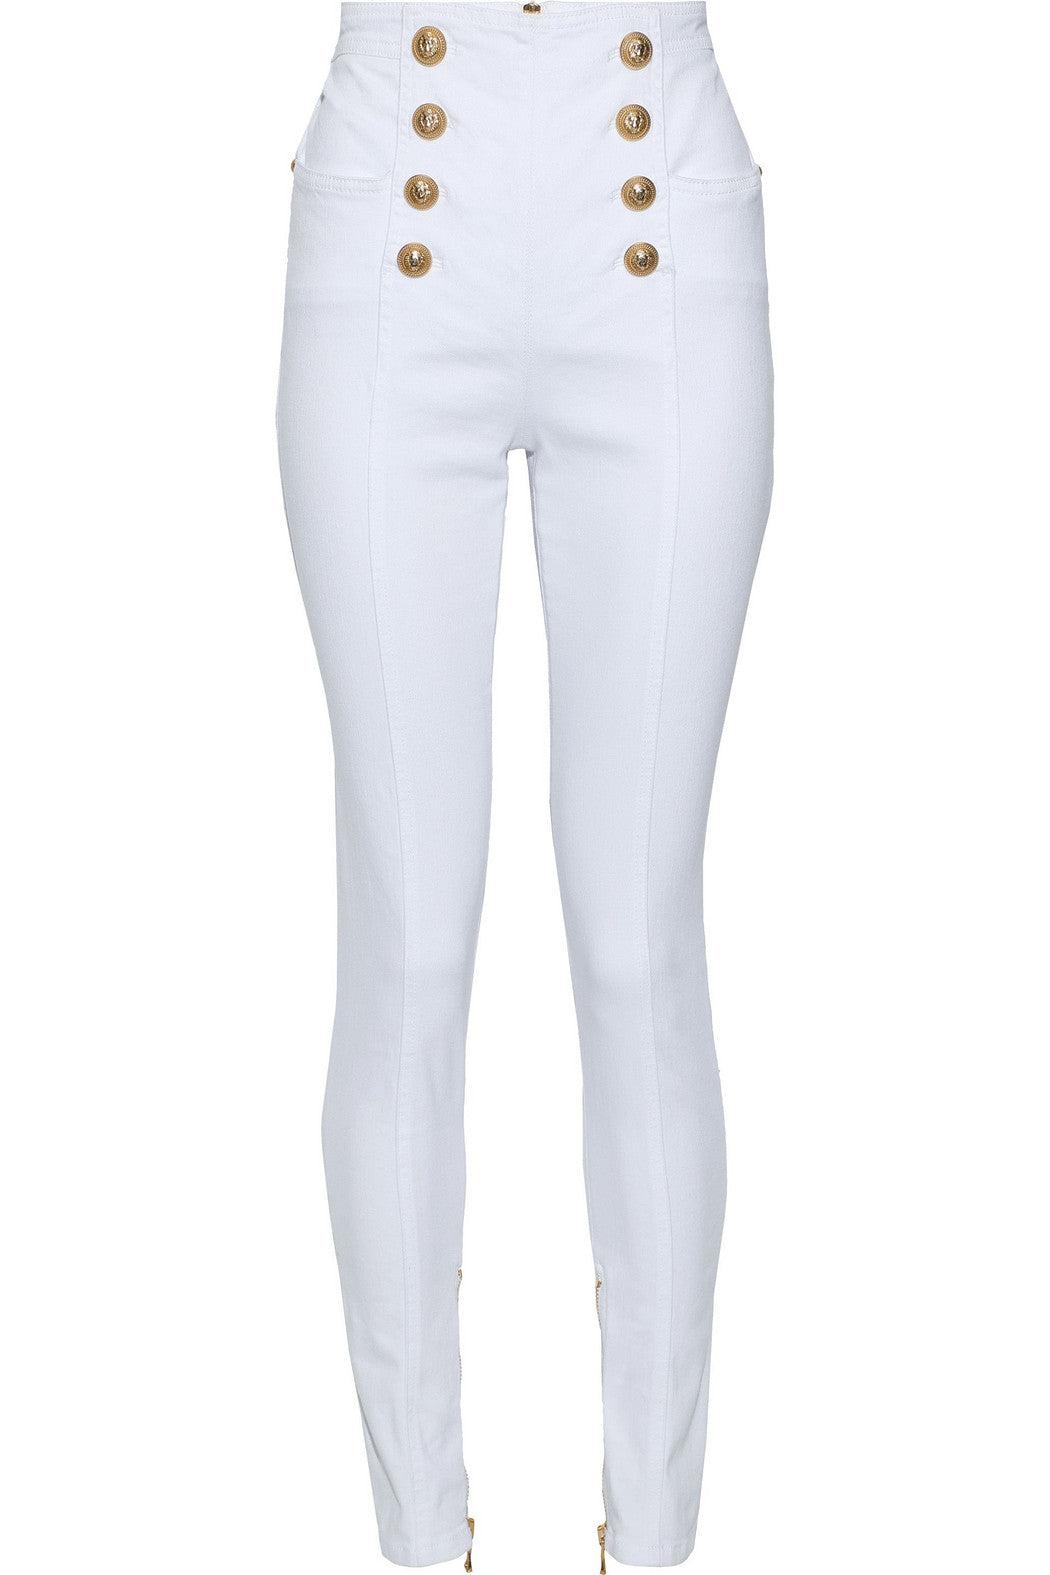 BALMAIN-Button-embellished high-rise skinny jeans